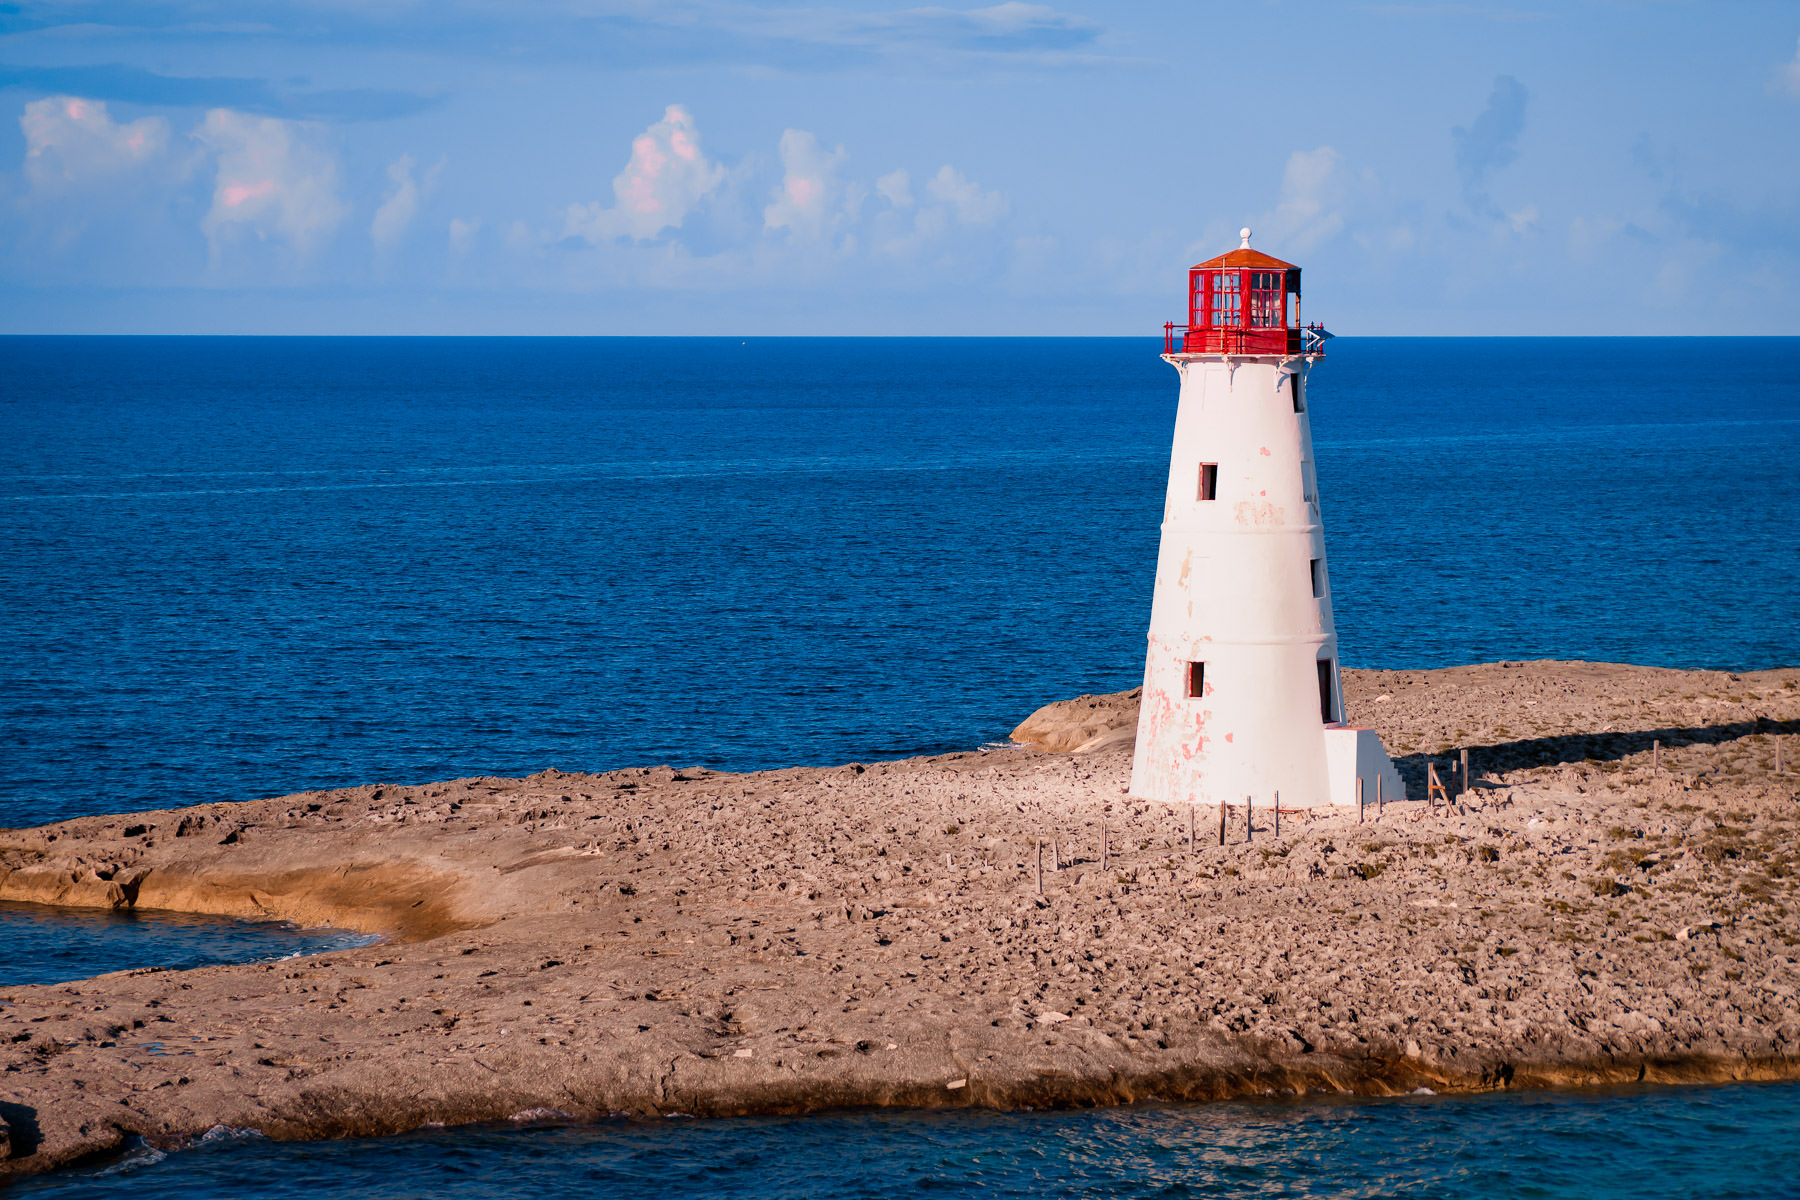 The Nassau Harbour Lighthouse sits abandoned on the western end of Colonial Beach at Nassau, Bahamas.